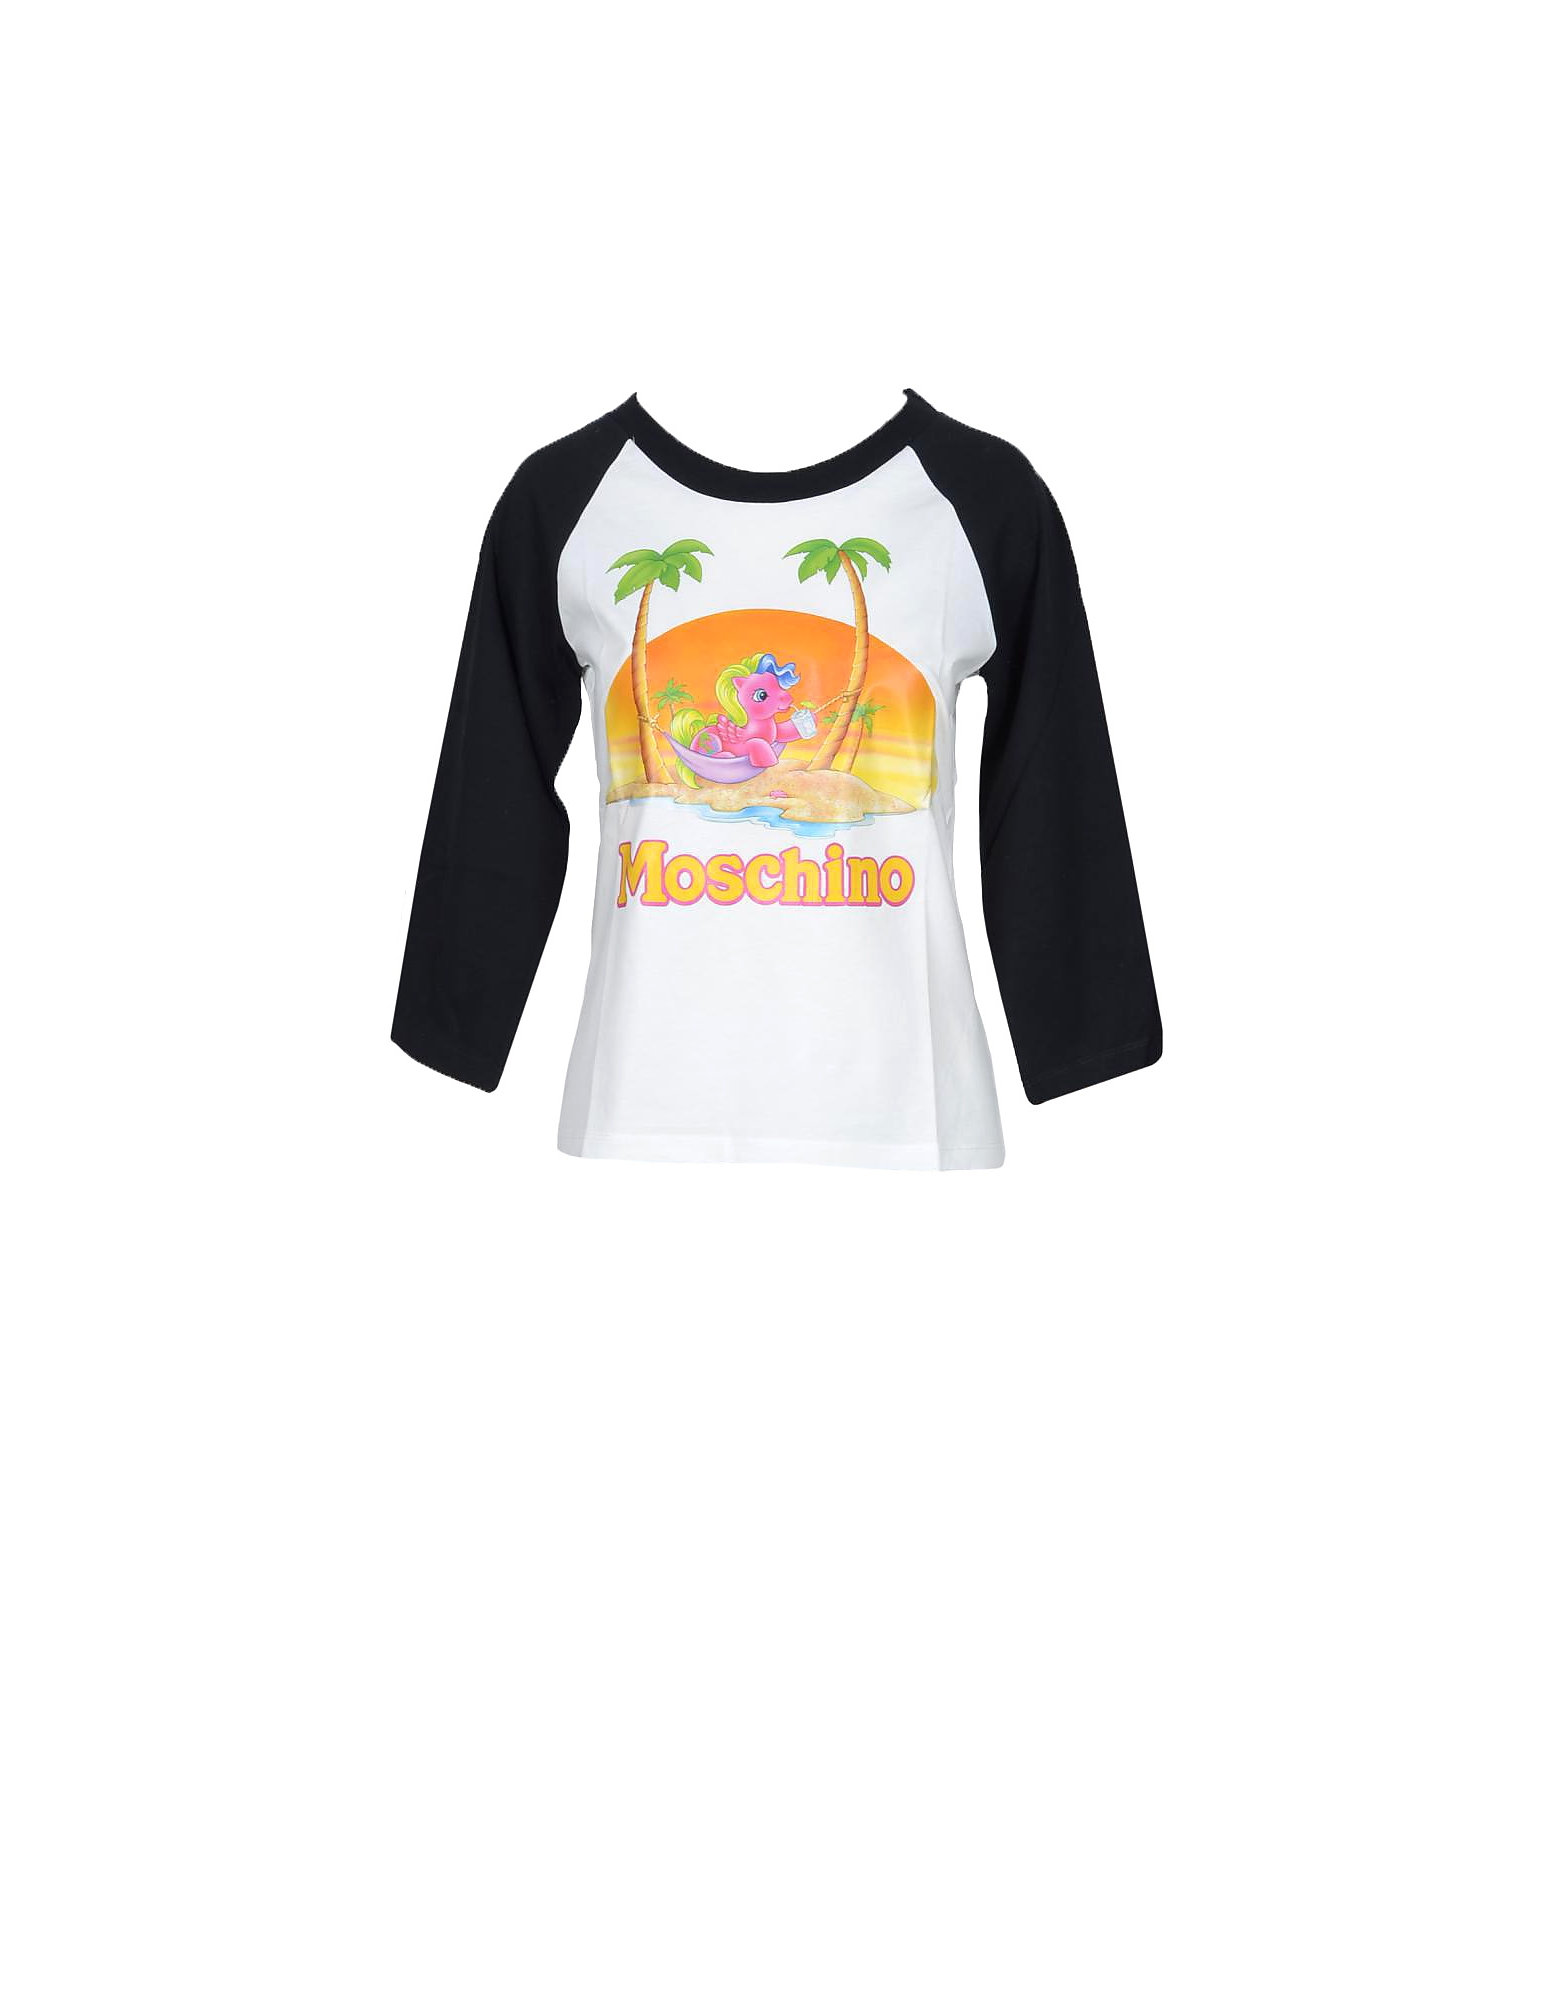 Moschino Designer T-Shirts & Tops, My Little Pony Print Black and White Cotton Women's Long Sleeve T-Shirt